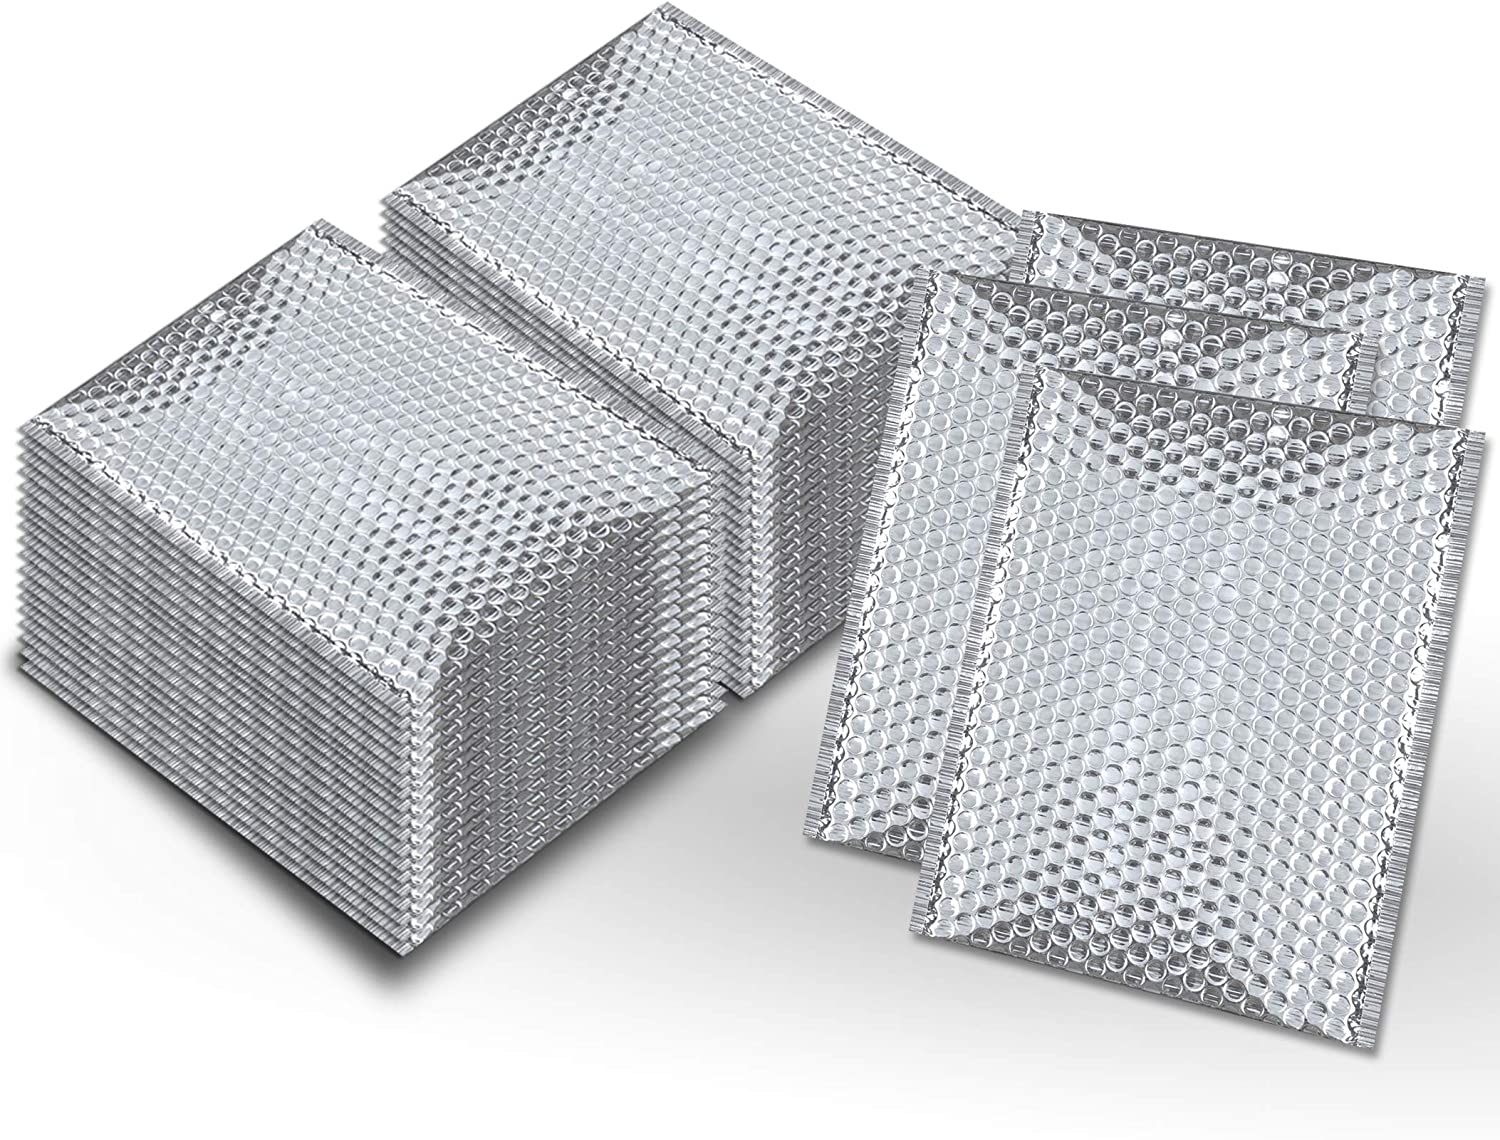 Pack of 50 Thermal Insulated Bubble Mailers 12x17 Food grade Padded envelopes 12 x 17 by Amiff. Silver cushion envelopes. Peel and Seal. Metallic foil. Mailing, shipping, packing, packaging.